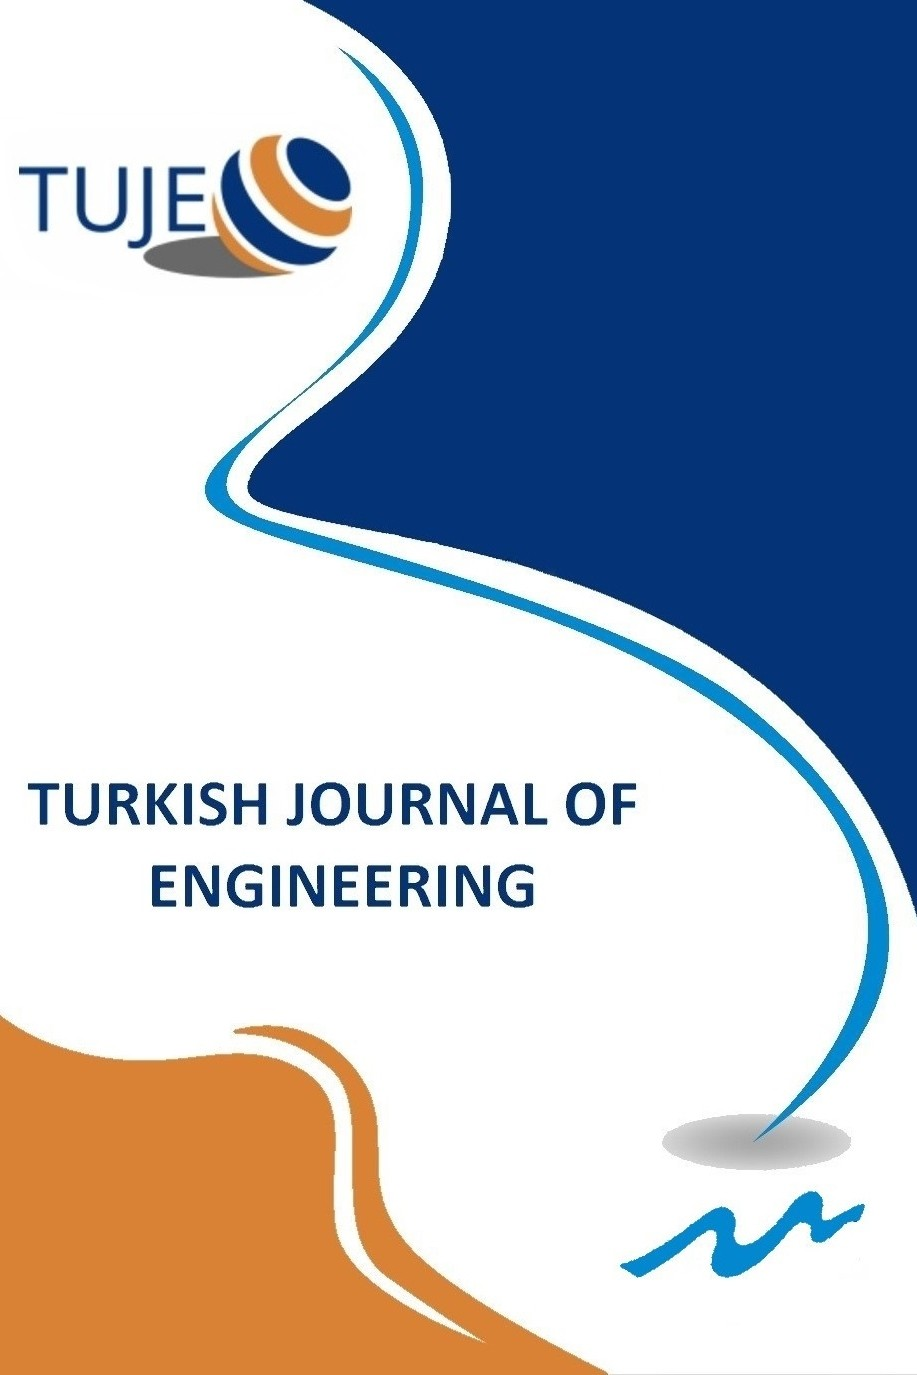 Turkish Journal of Engineering